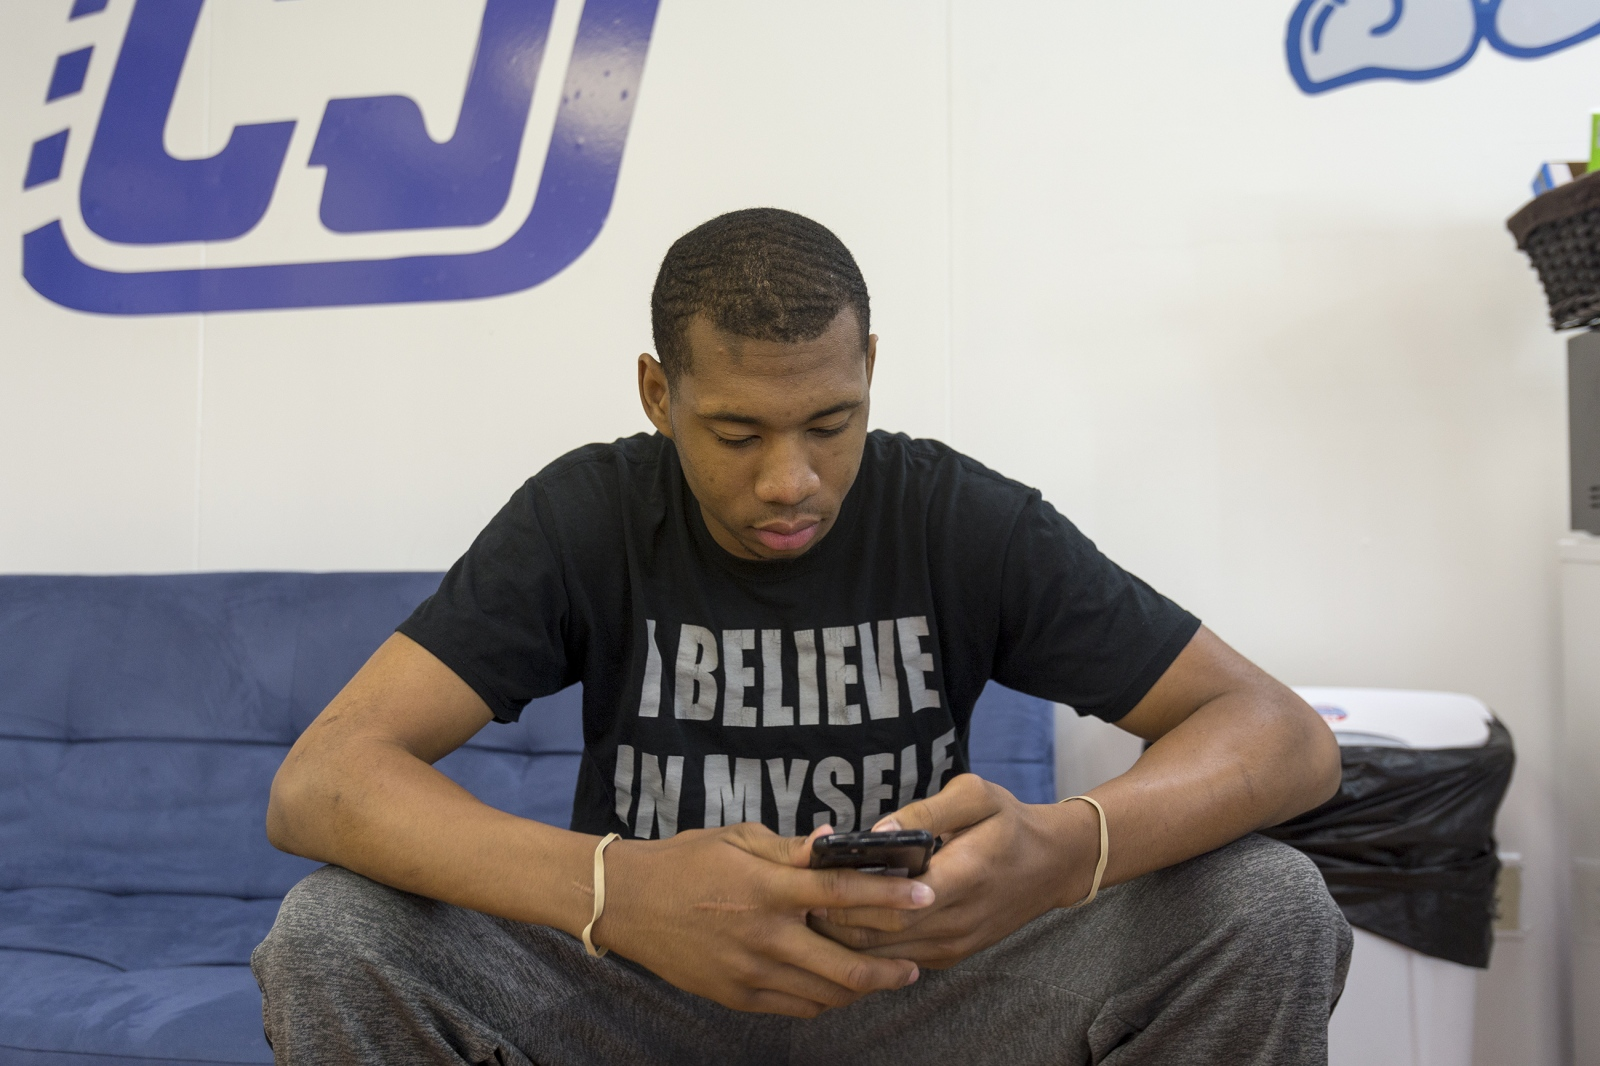 """I believe in myself,"" reads Michael Green's t-shirt as he checks his phone waiting for a haircut.  Michael is preparing for his senior prom, weeks before he graduates and then heads to college on a basketball scholarship."